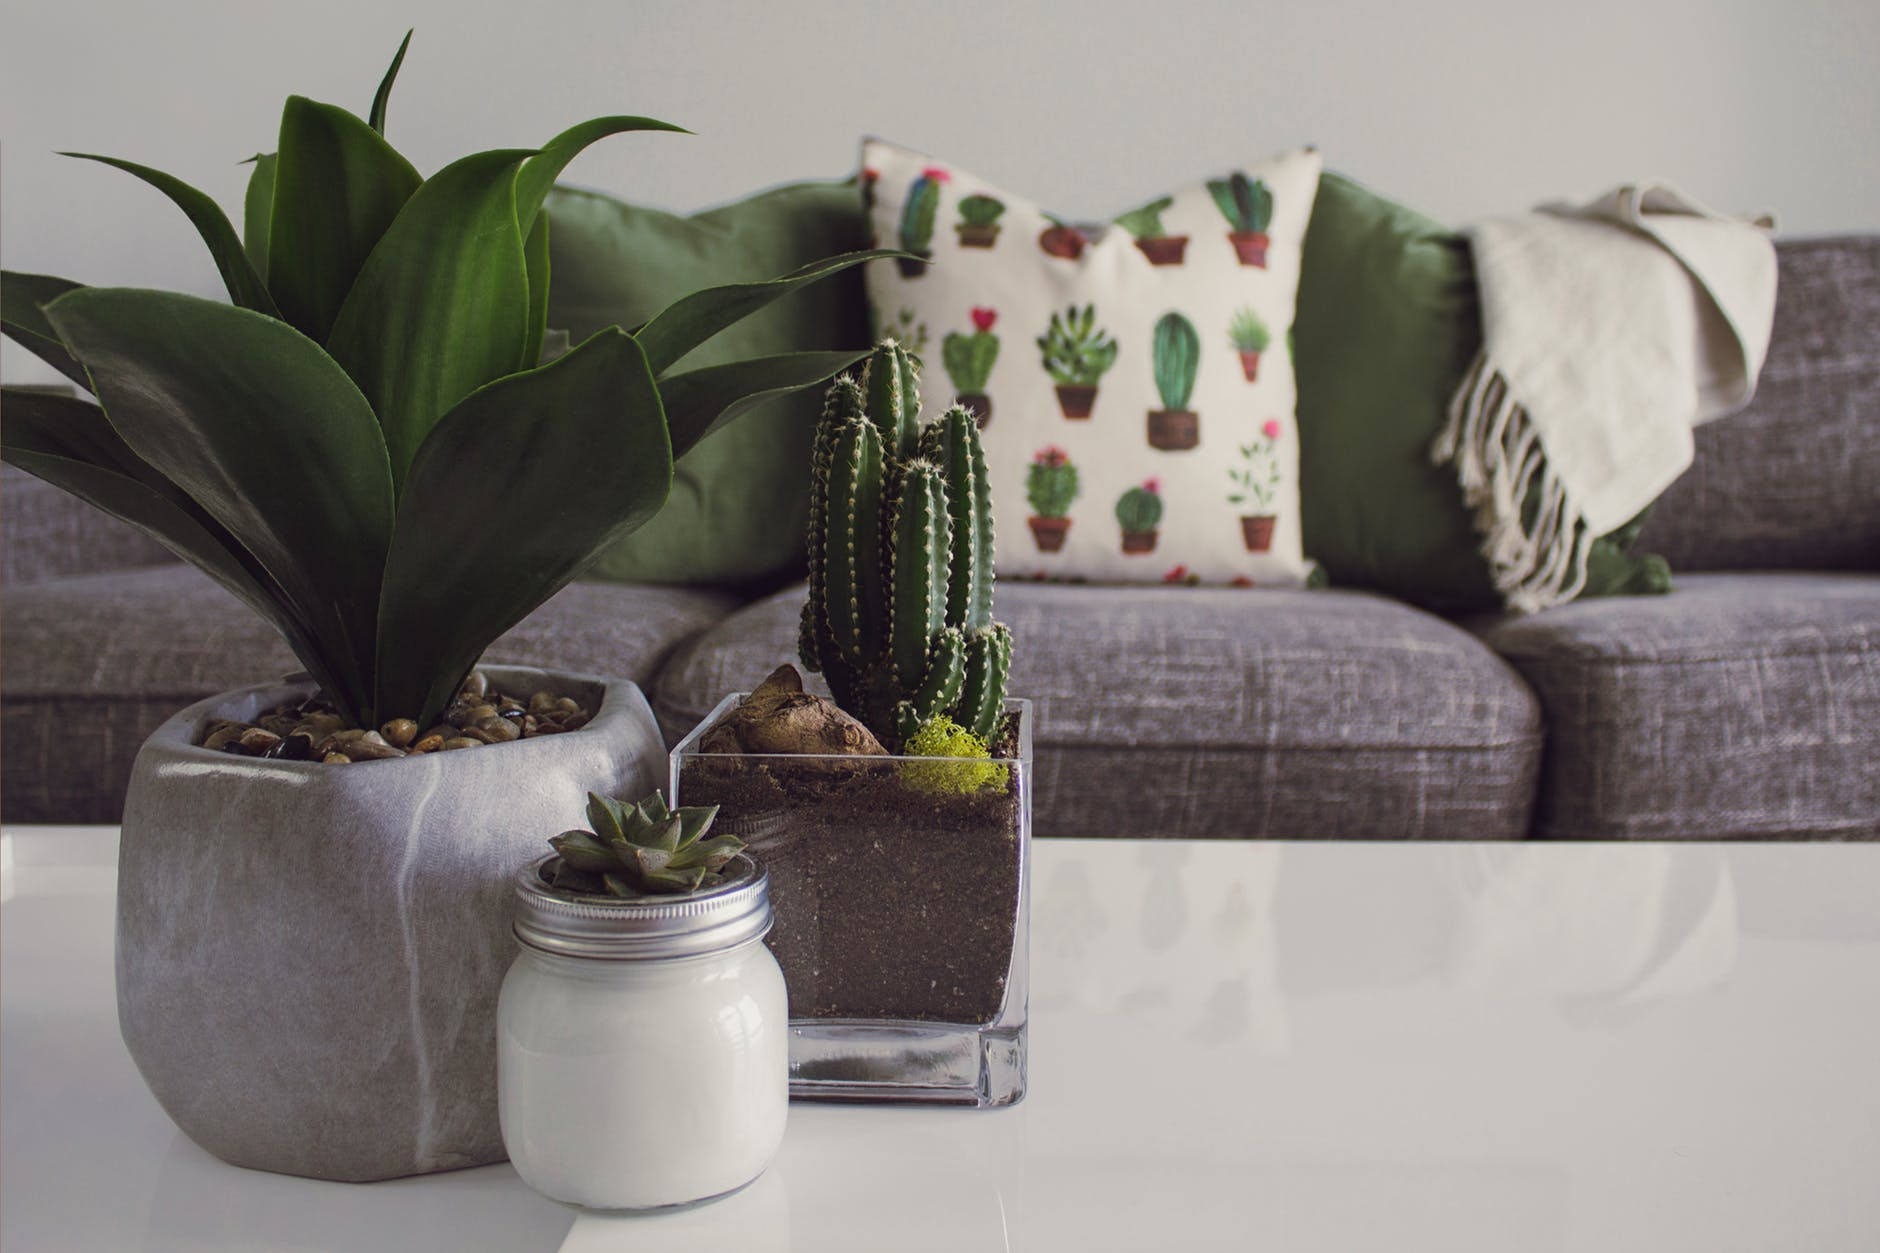 How to start a home decor business